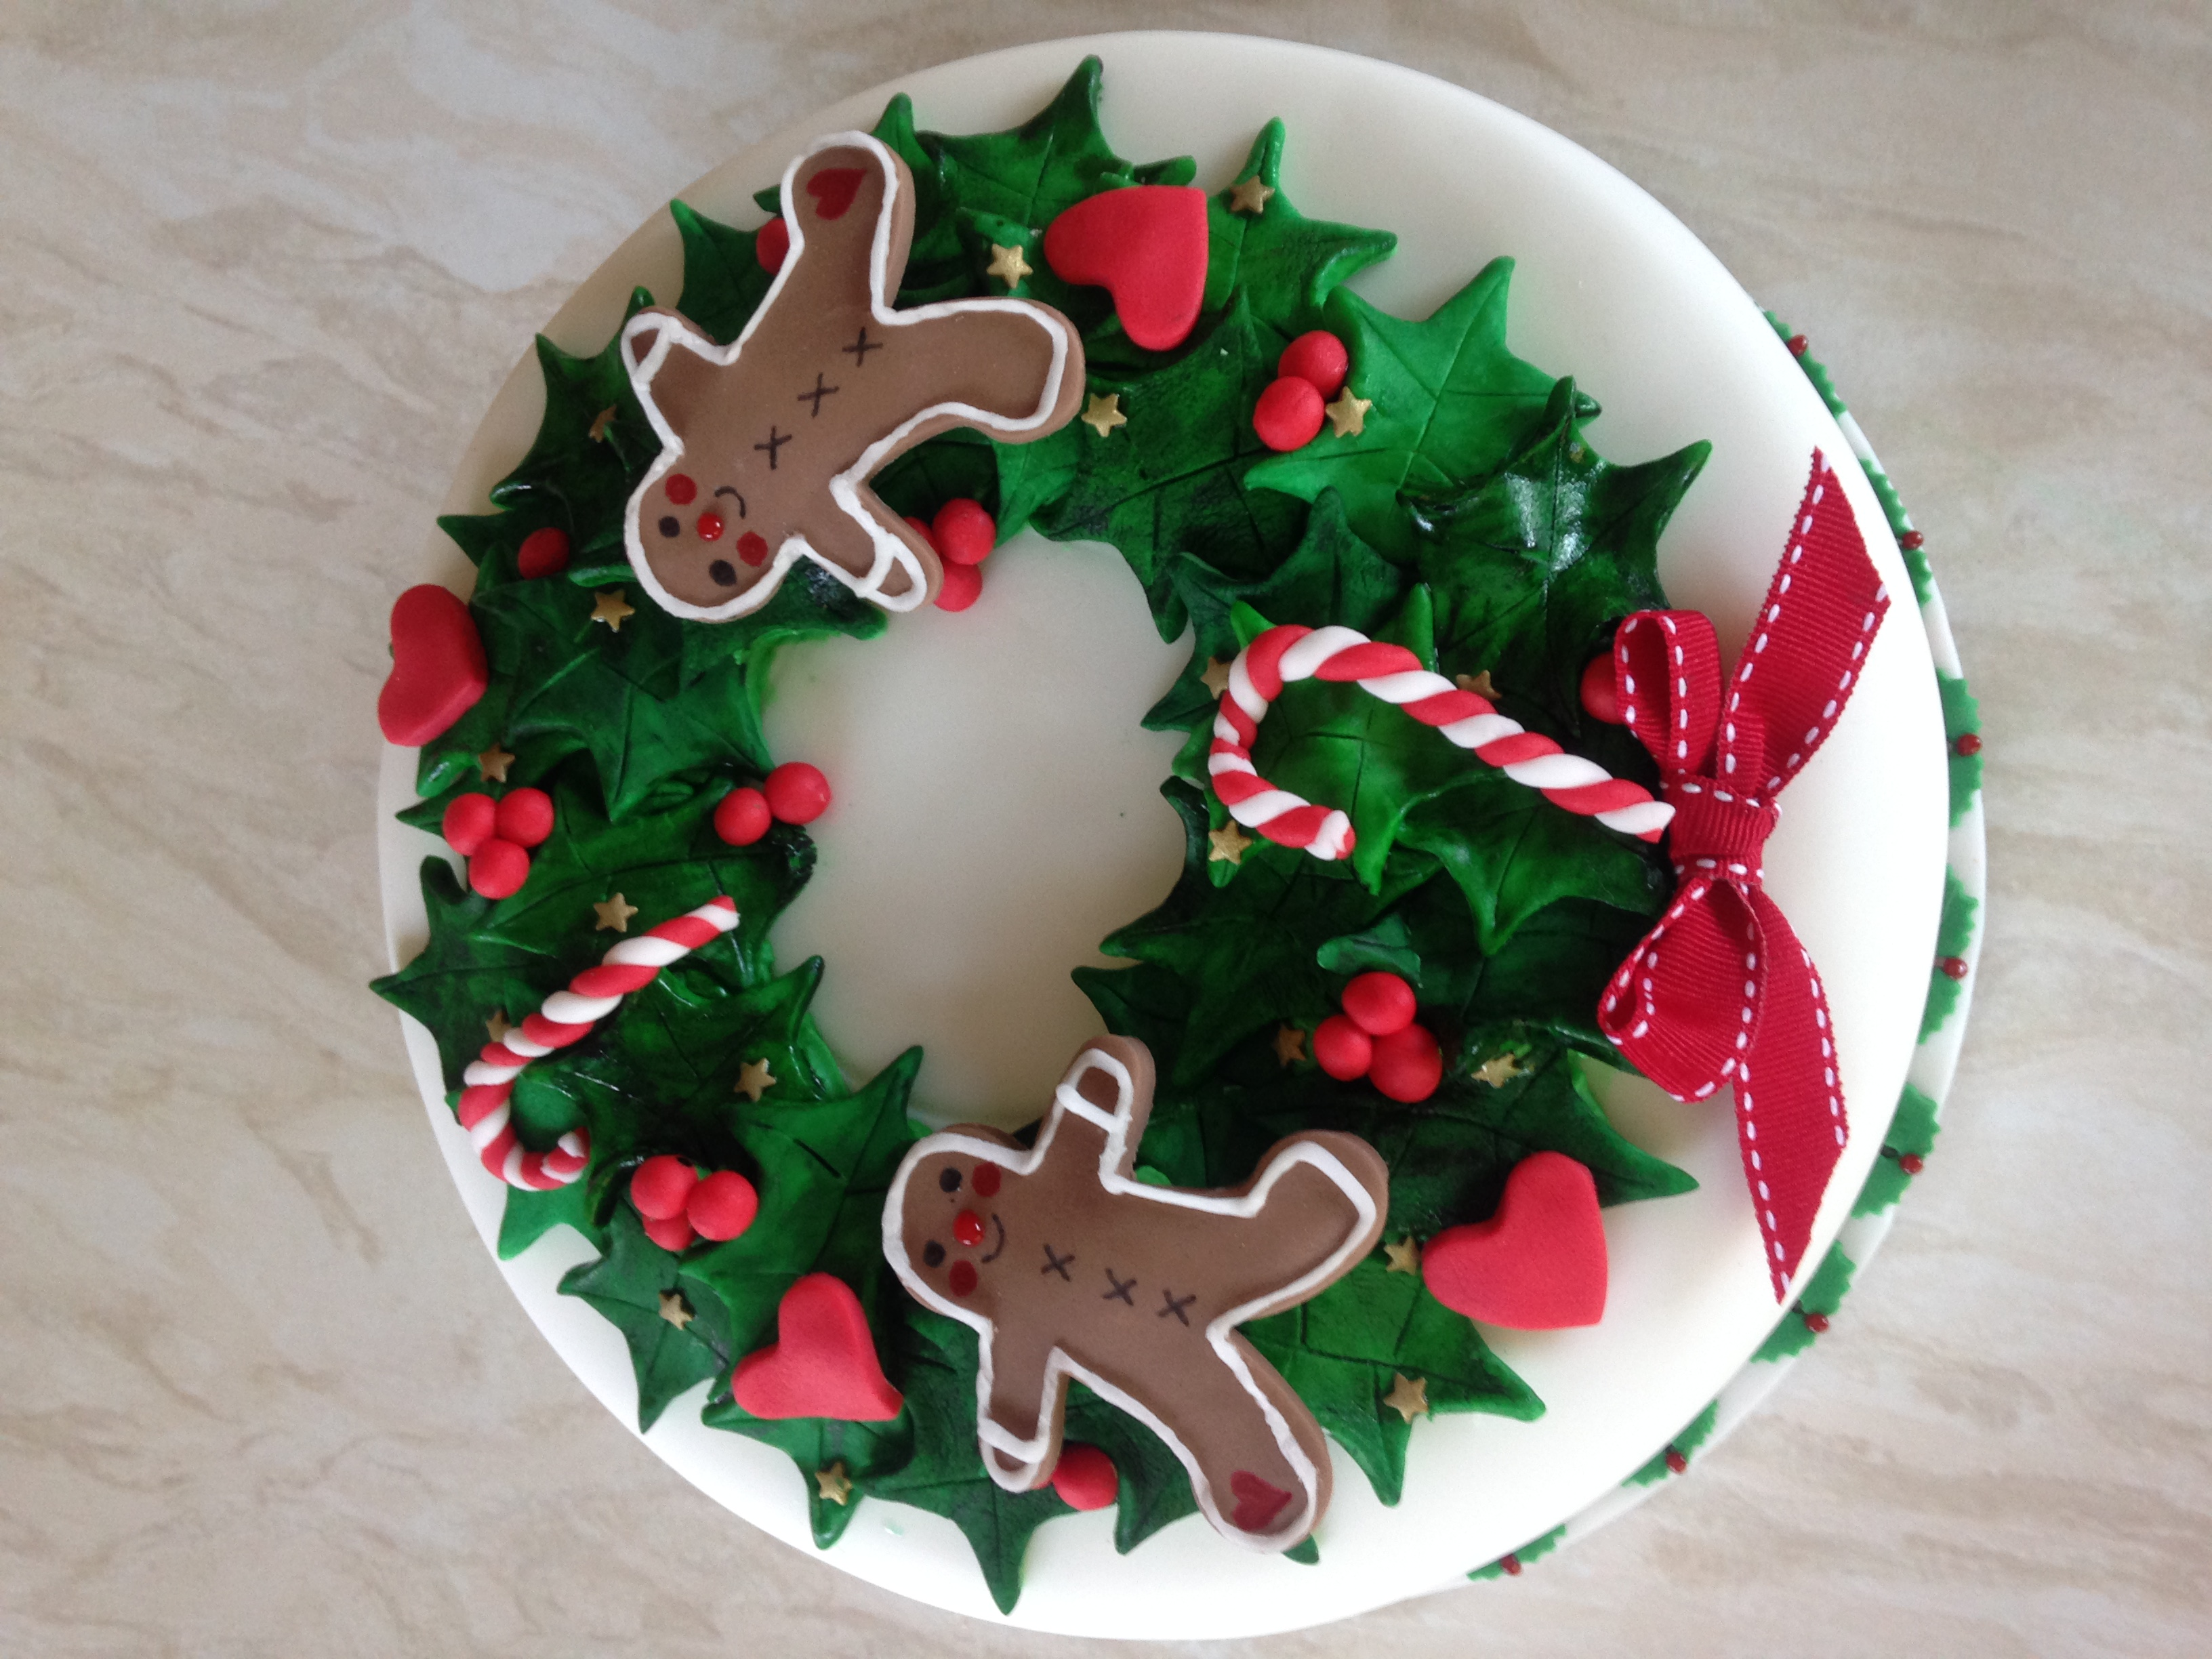 Gingerbread man Christmas wreath cake